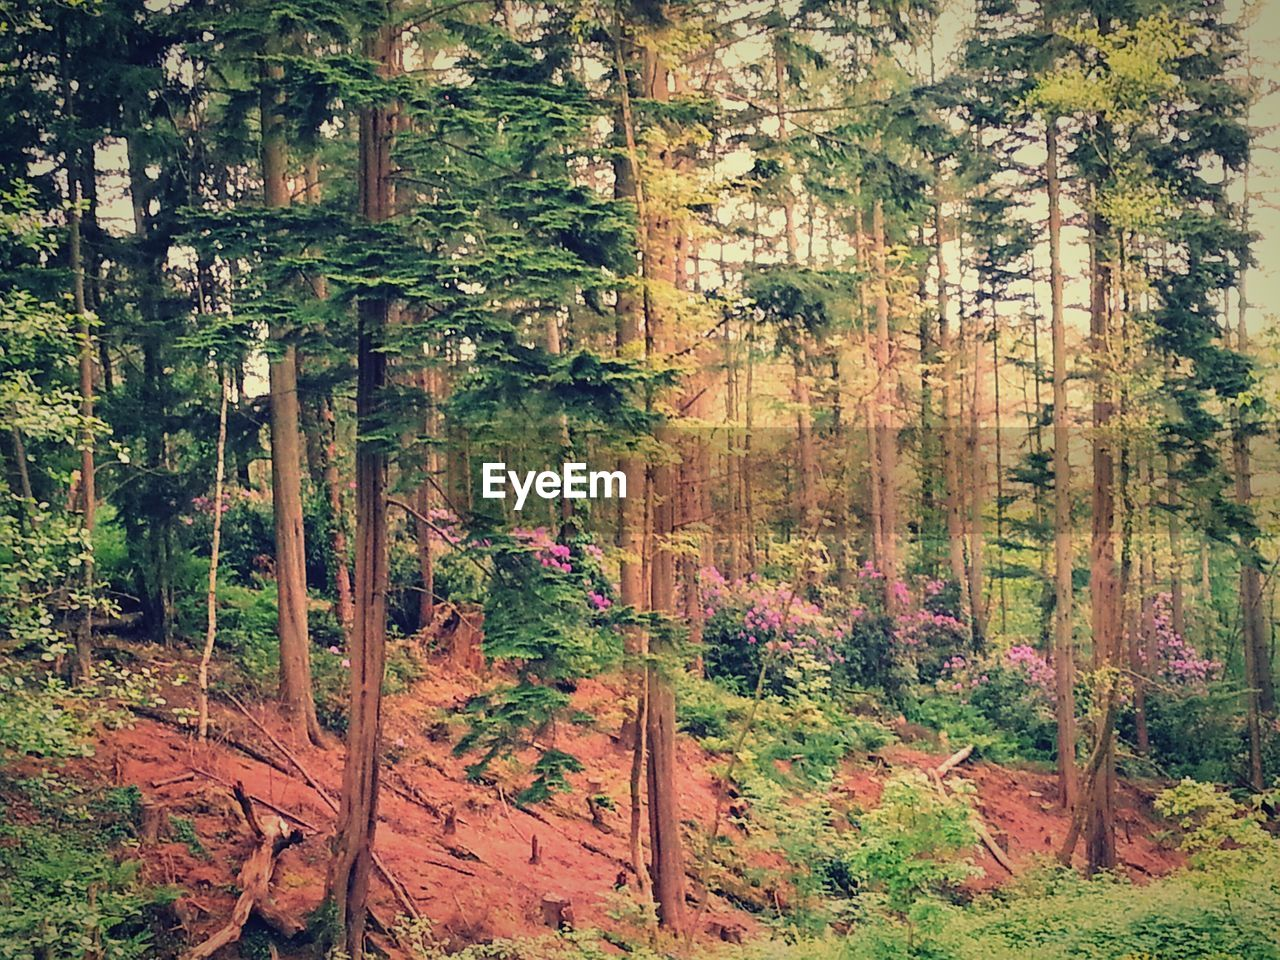 forest, tree, nature, growth, no people, vegetation, tranquility, plant, flora, outdoors, day, tree trunk, beauty in nature, landscape, scenics